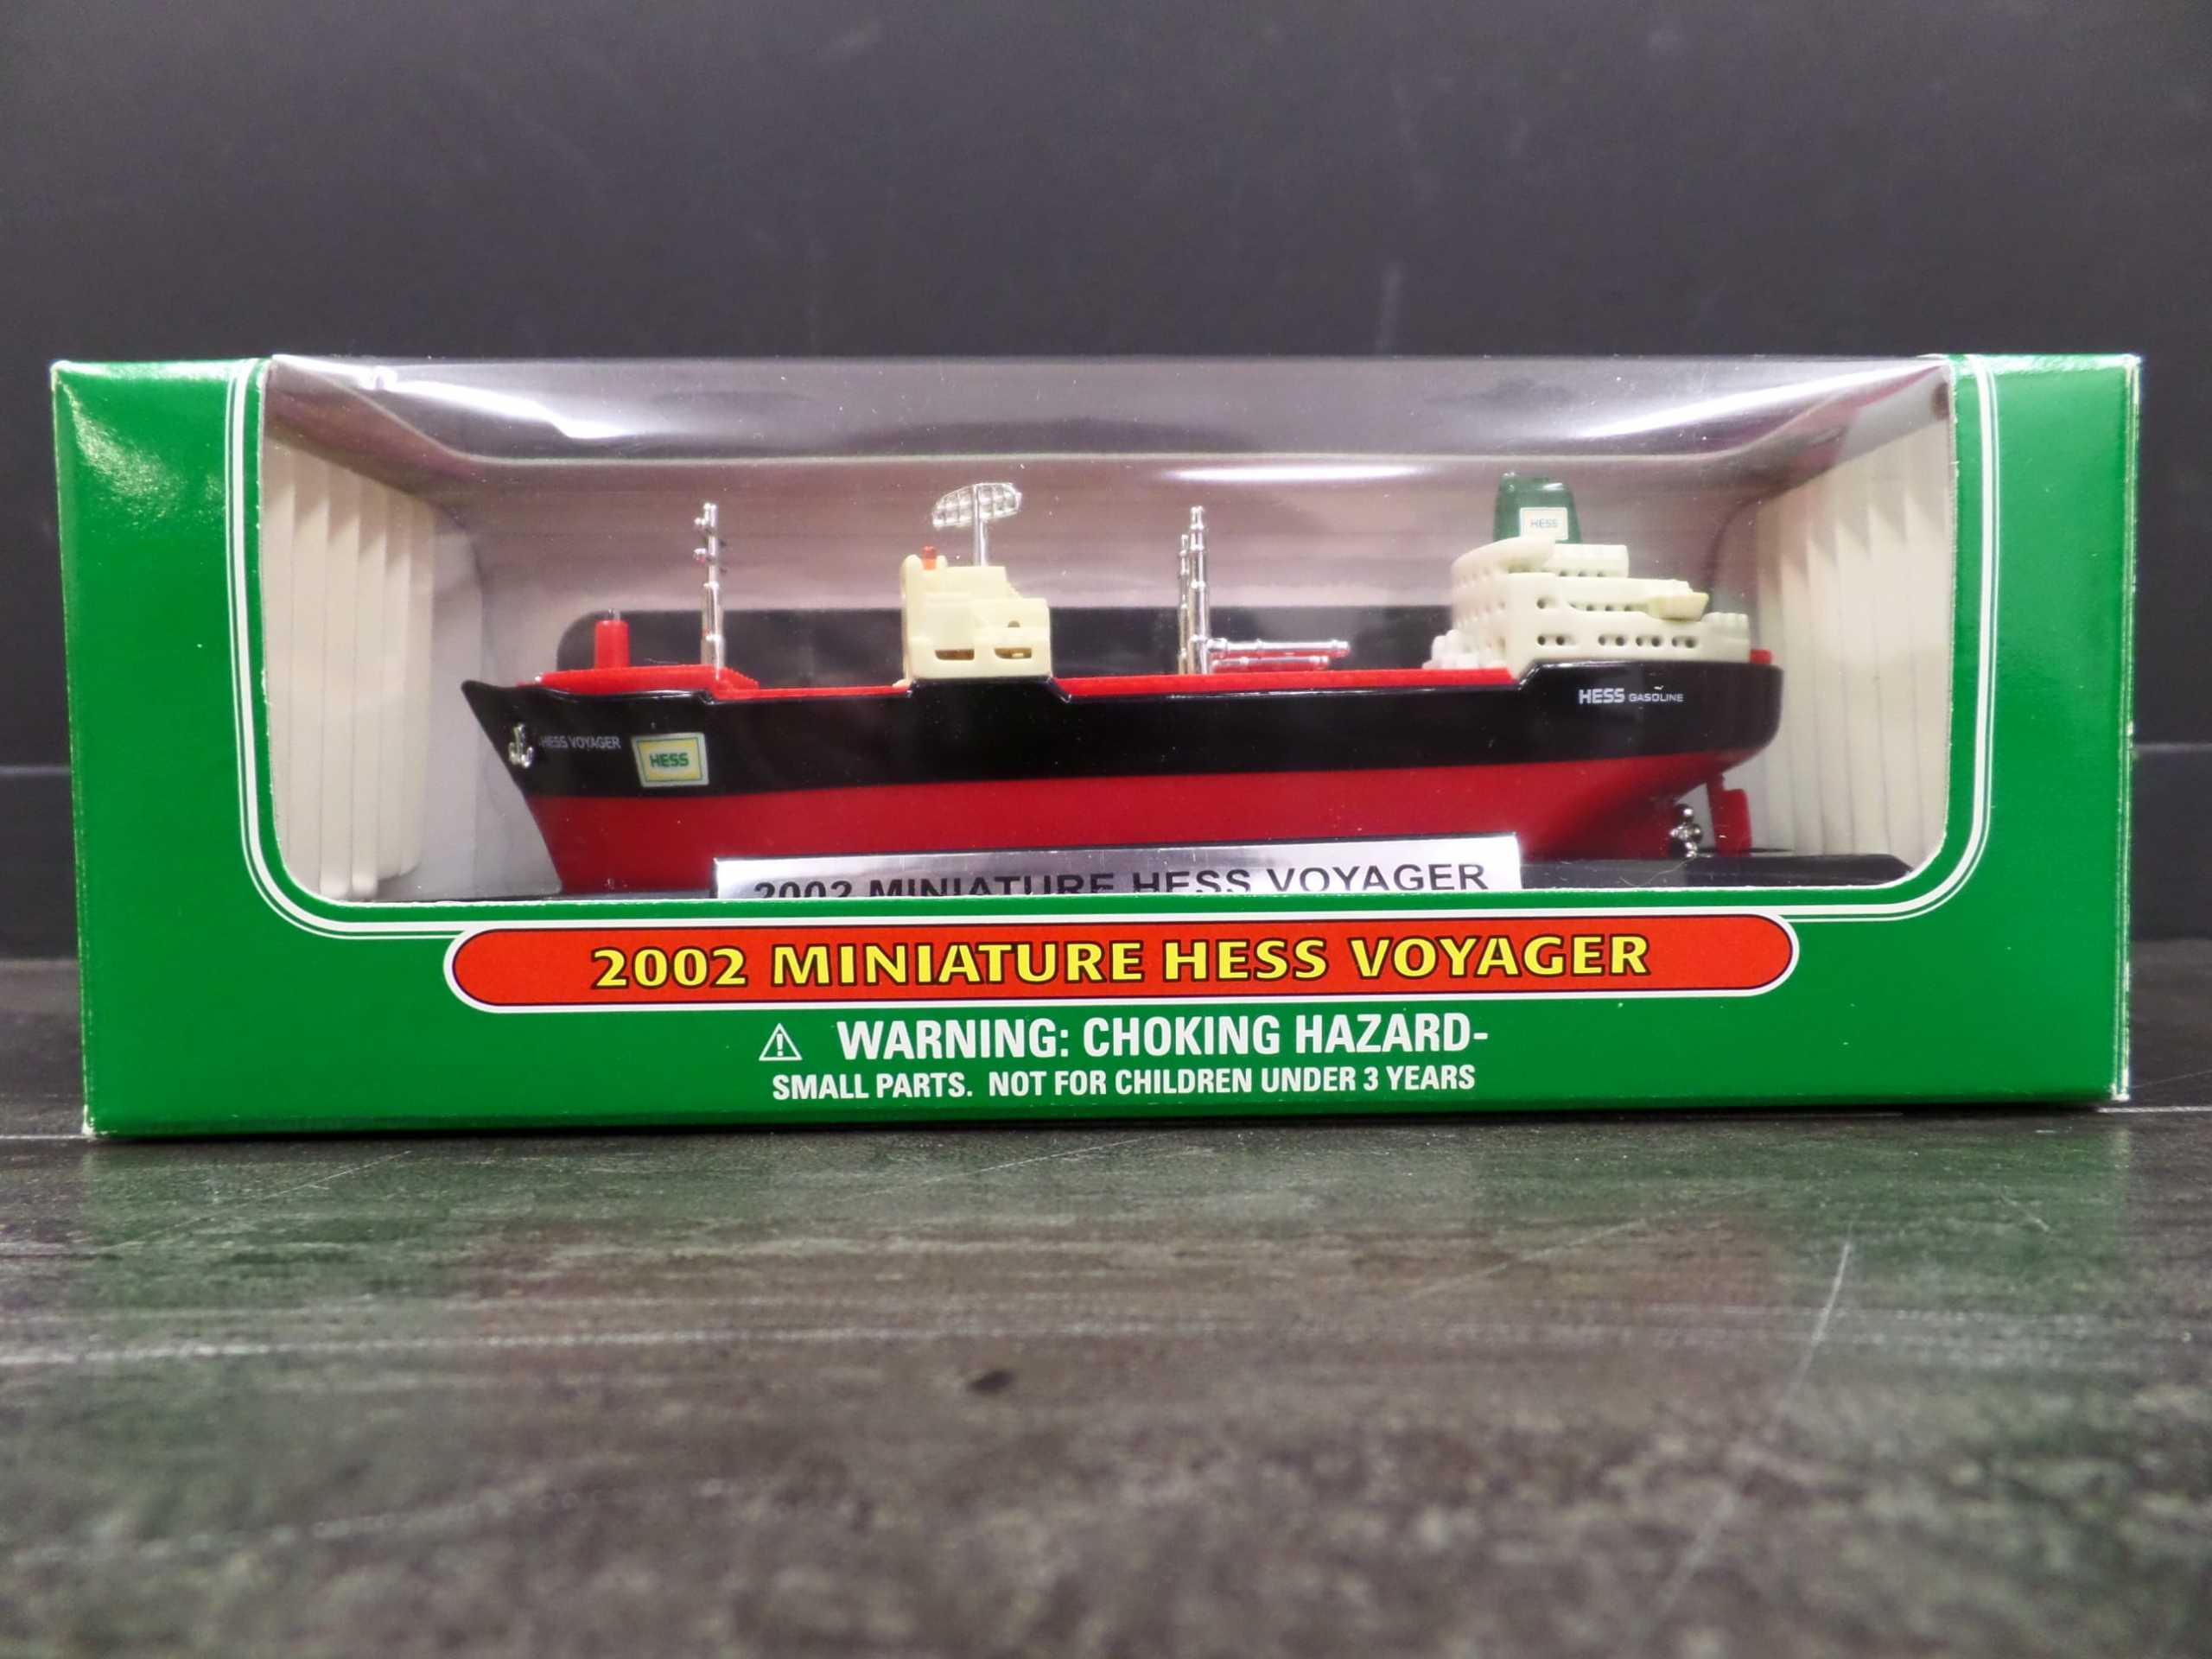 2002 MINI HESS VOYAGER SHIP  Donated by: WPBS SUPPORTER  Buy It Now: $15